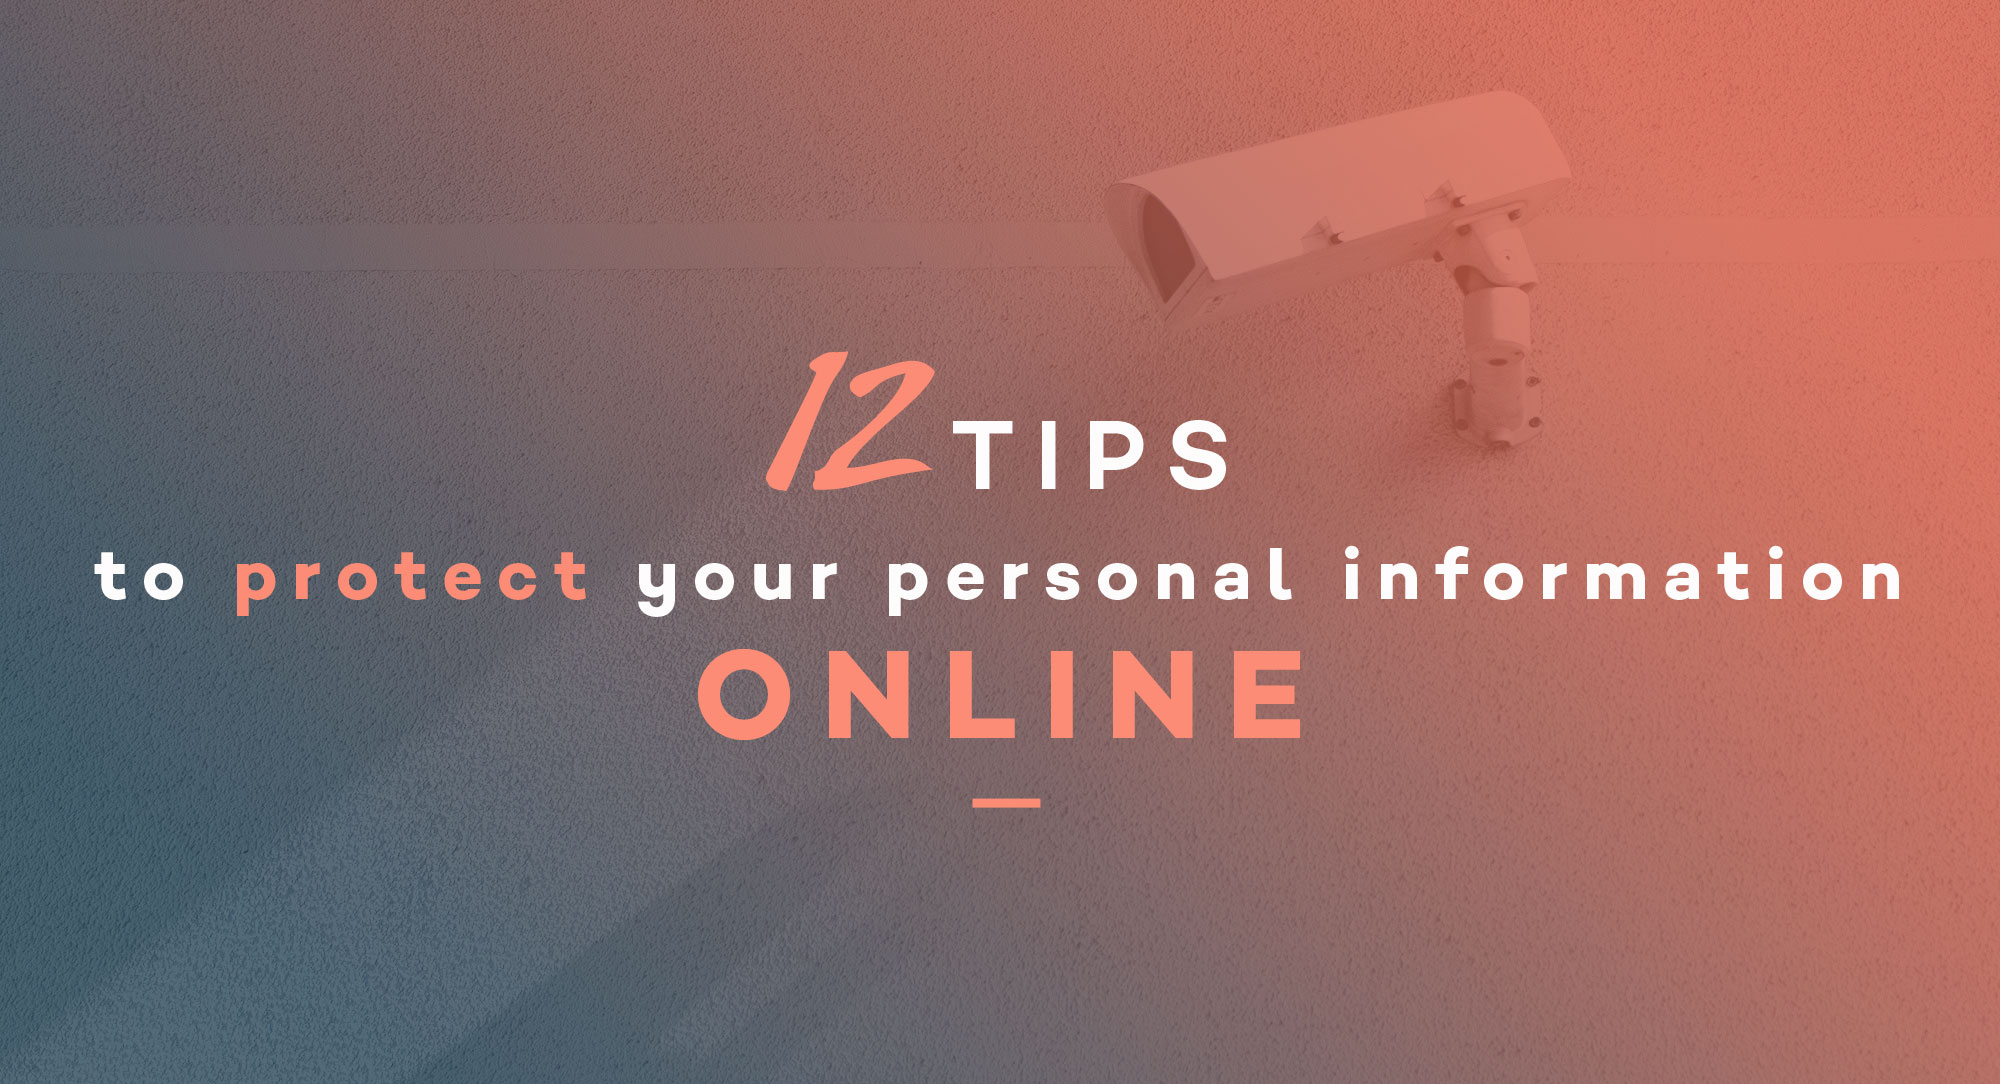 12-tips-to-protect-your-personal-information-online